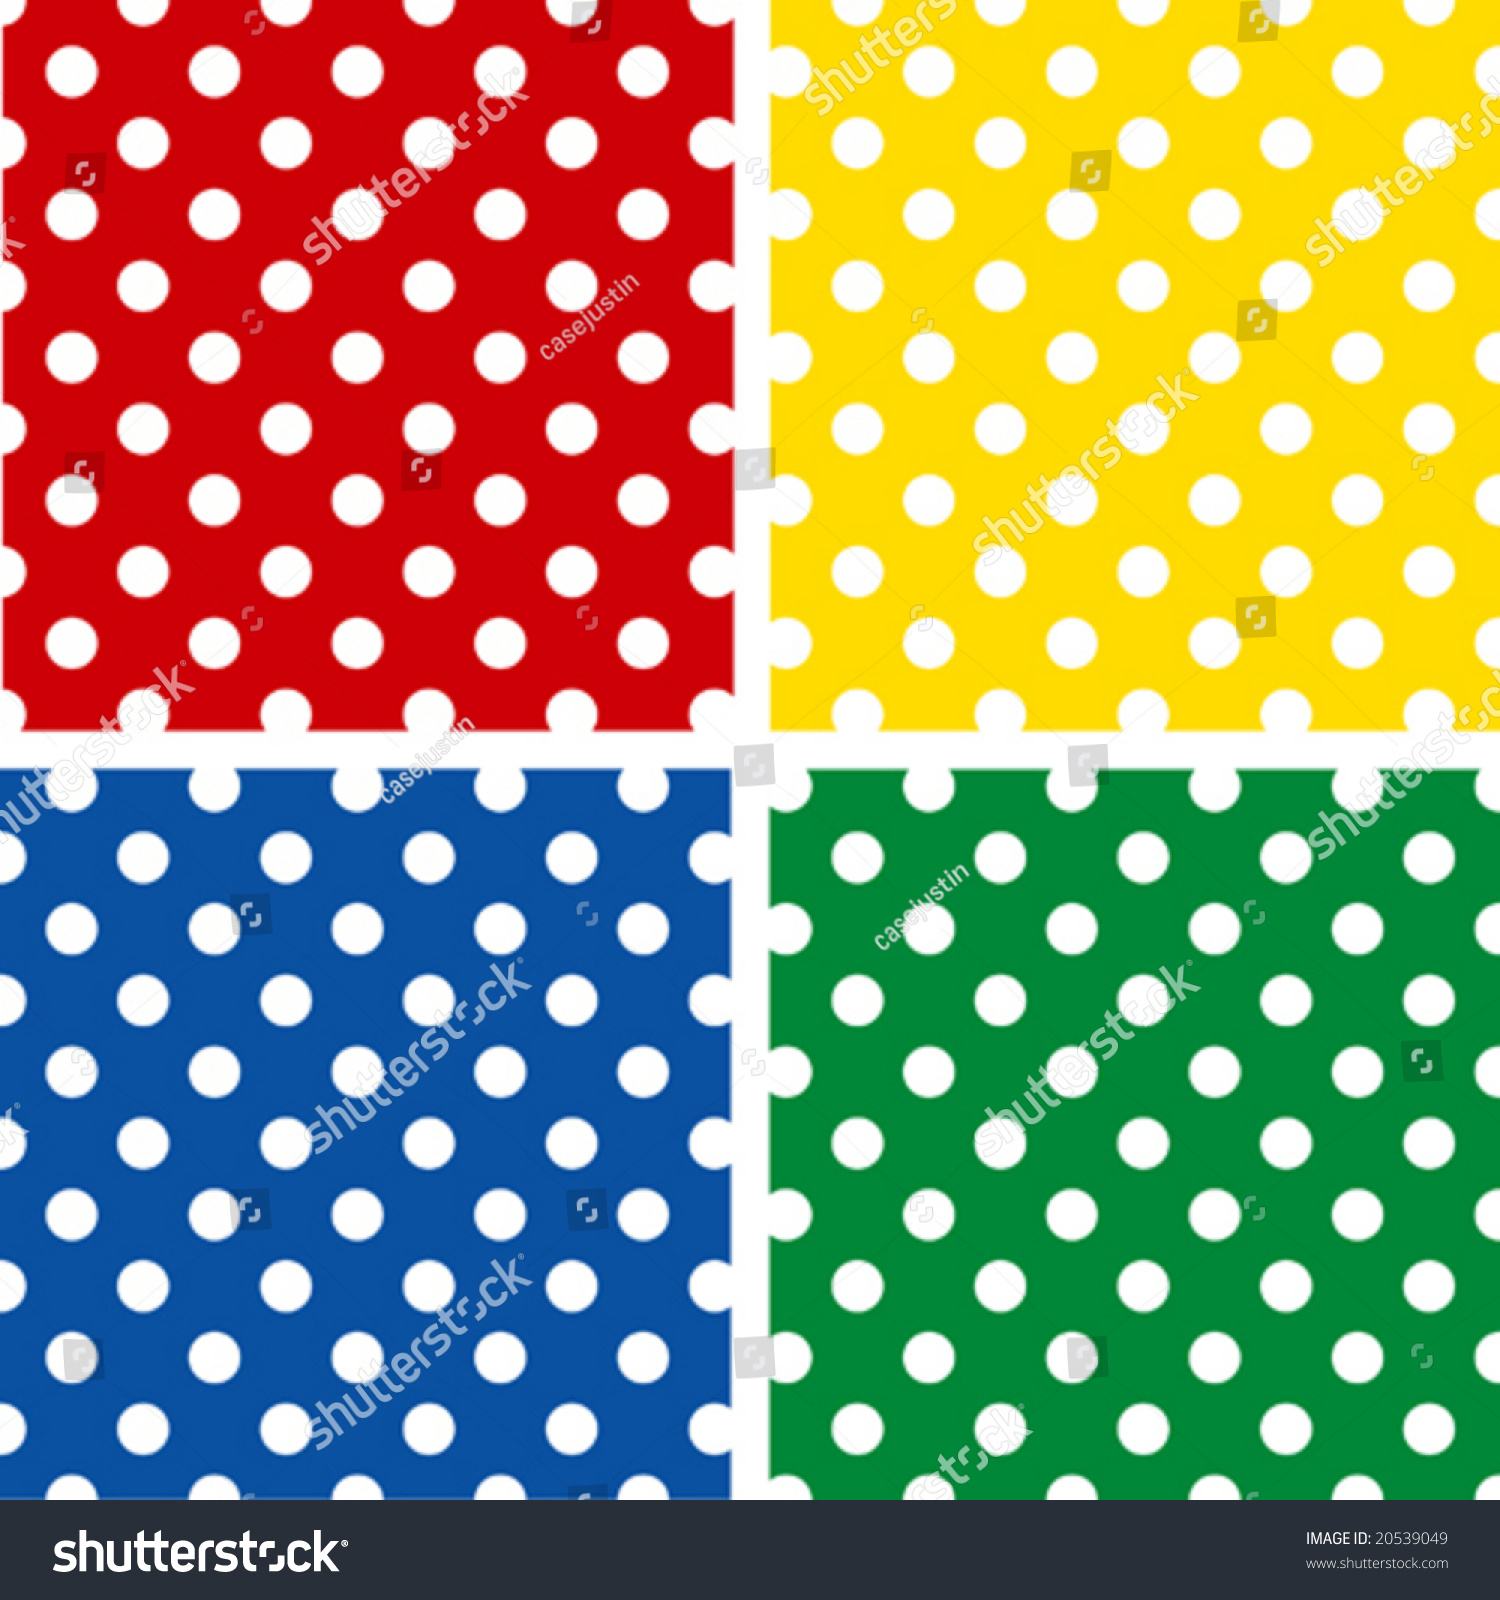 Seamless patterns white polka dots on stock vector for Red and white polka dot pattern